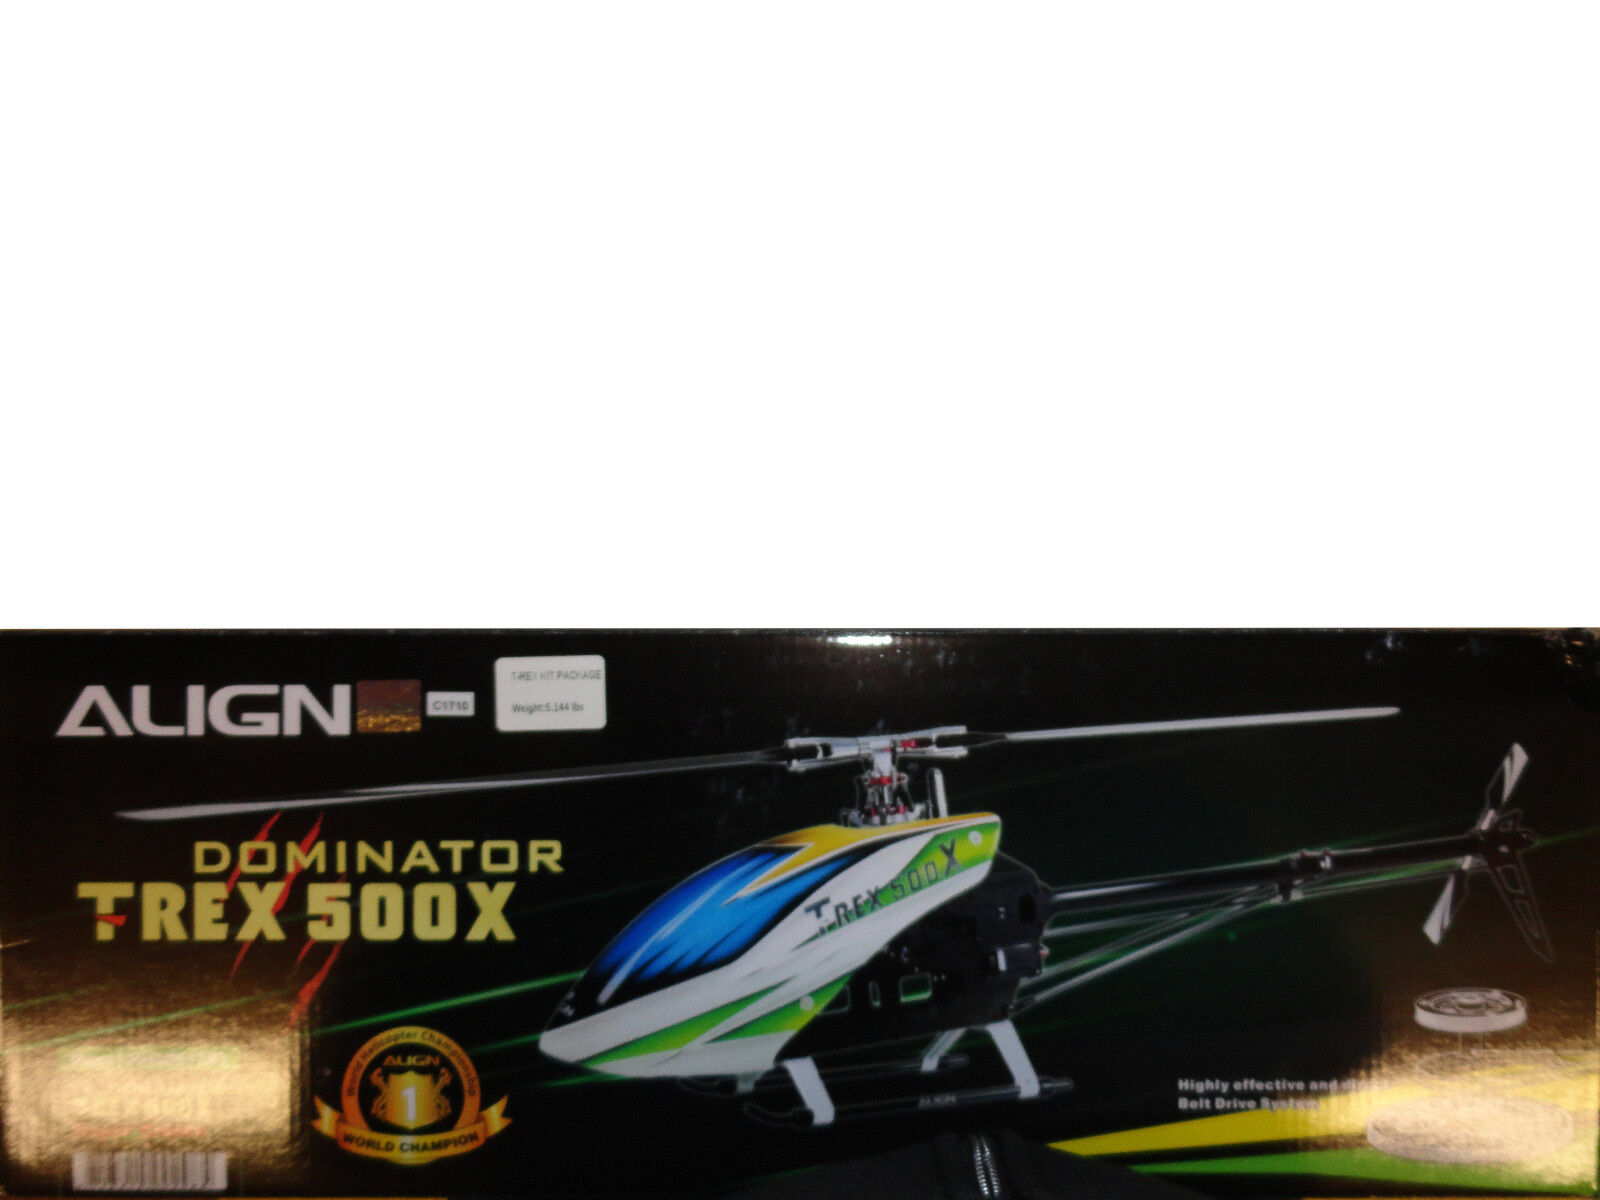 Align Trex 500 X Dominator 500 Sized Electric Helicopter